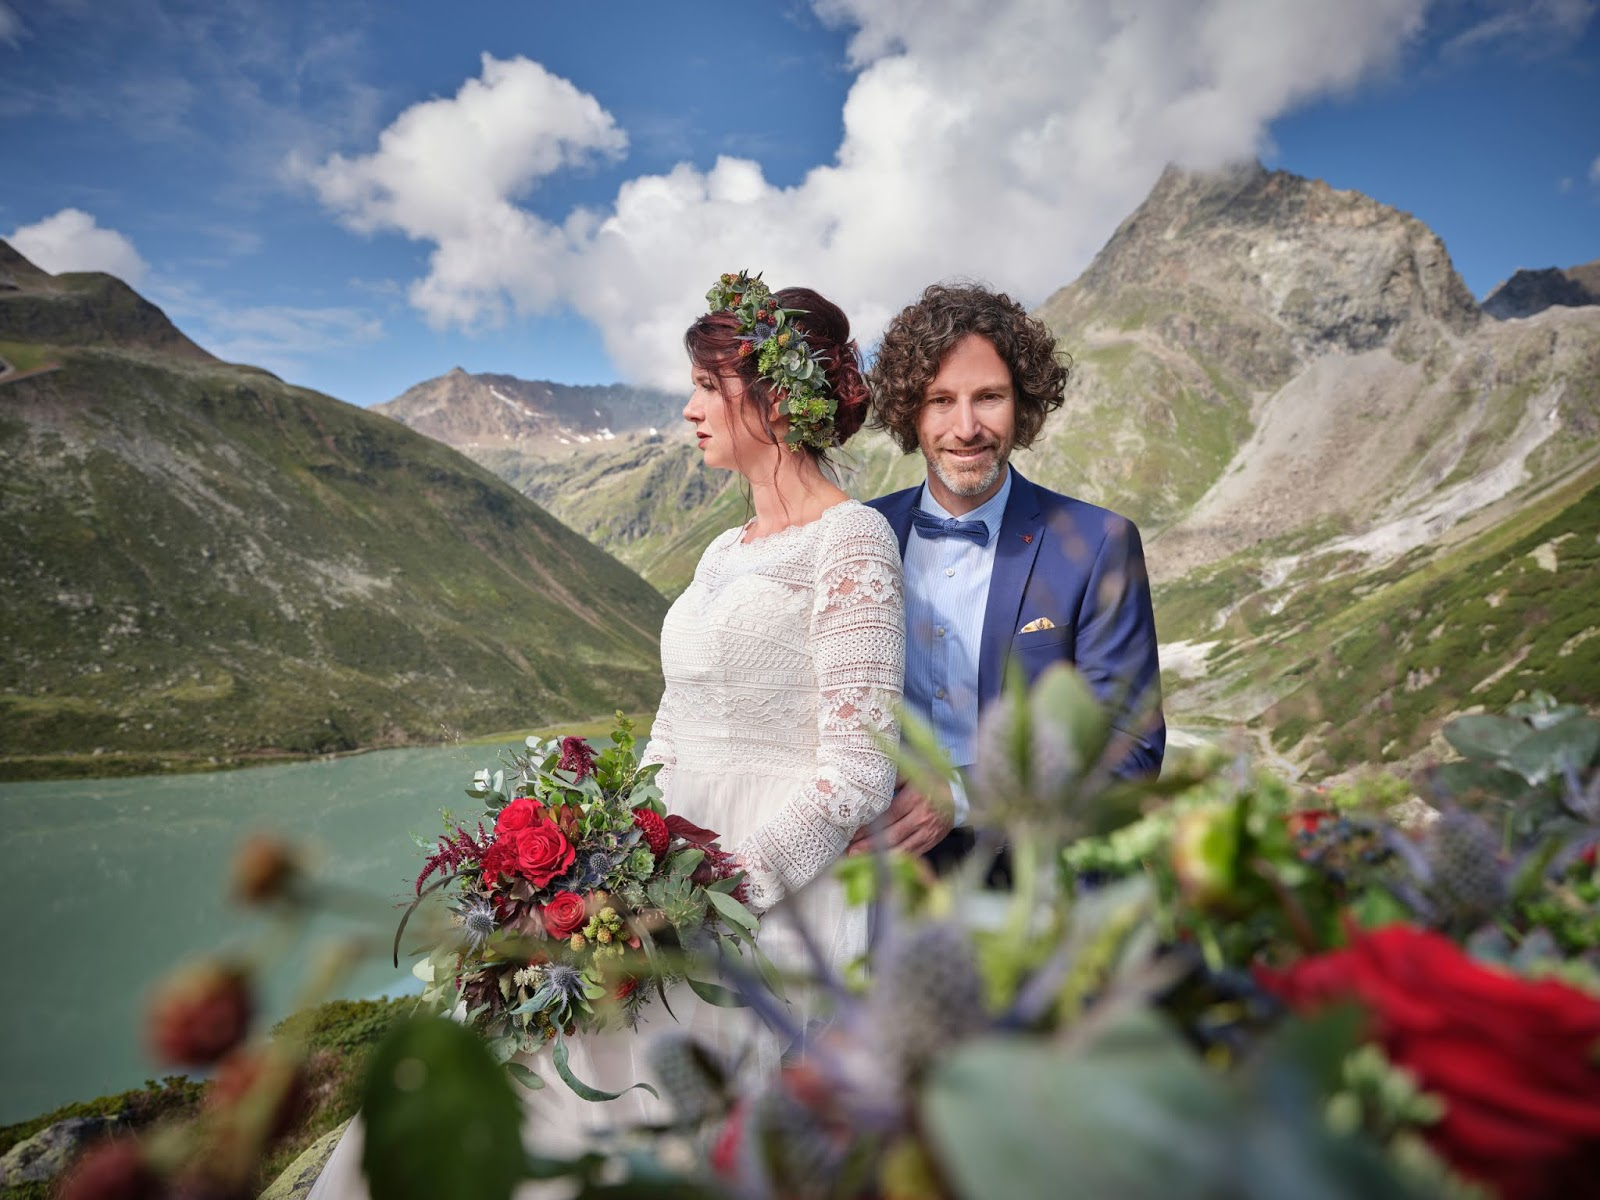 Rifflsee, Pitztal, Bergromantik, romantische Berghochzeit, Boho Mountain Wedding, Hochzeitscocktail, Berghochzeit in Tirol, Mountain wedding, Pure Resort Pitztal, Fotograf Marc Gilsdorf Alpenwedding, Hochzeitsplaneragentur 4 weddings & events, Uschi Glas, Styled Shooting, Destination Wedding Austria, Braut und Bräutigam Shooting, heiraten in den Bergen